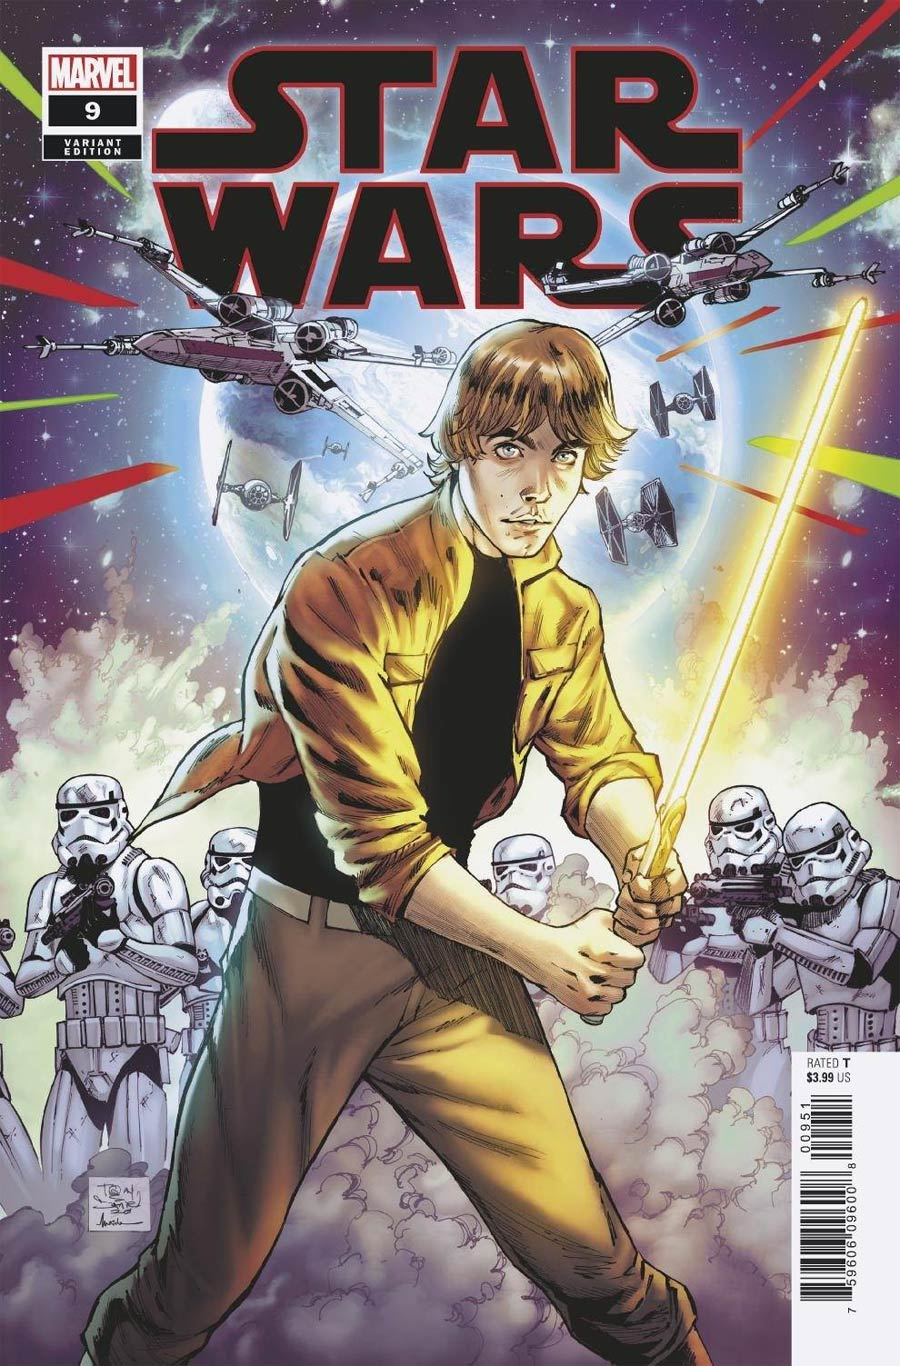 Star Wars Vol 5 #9 Cover D Incentive Tony Daniel Variant Cover